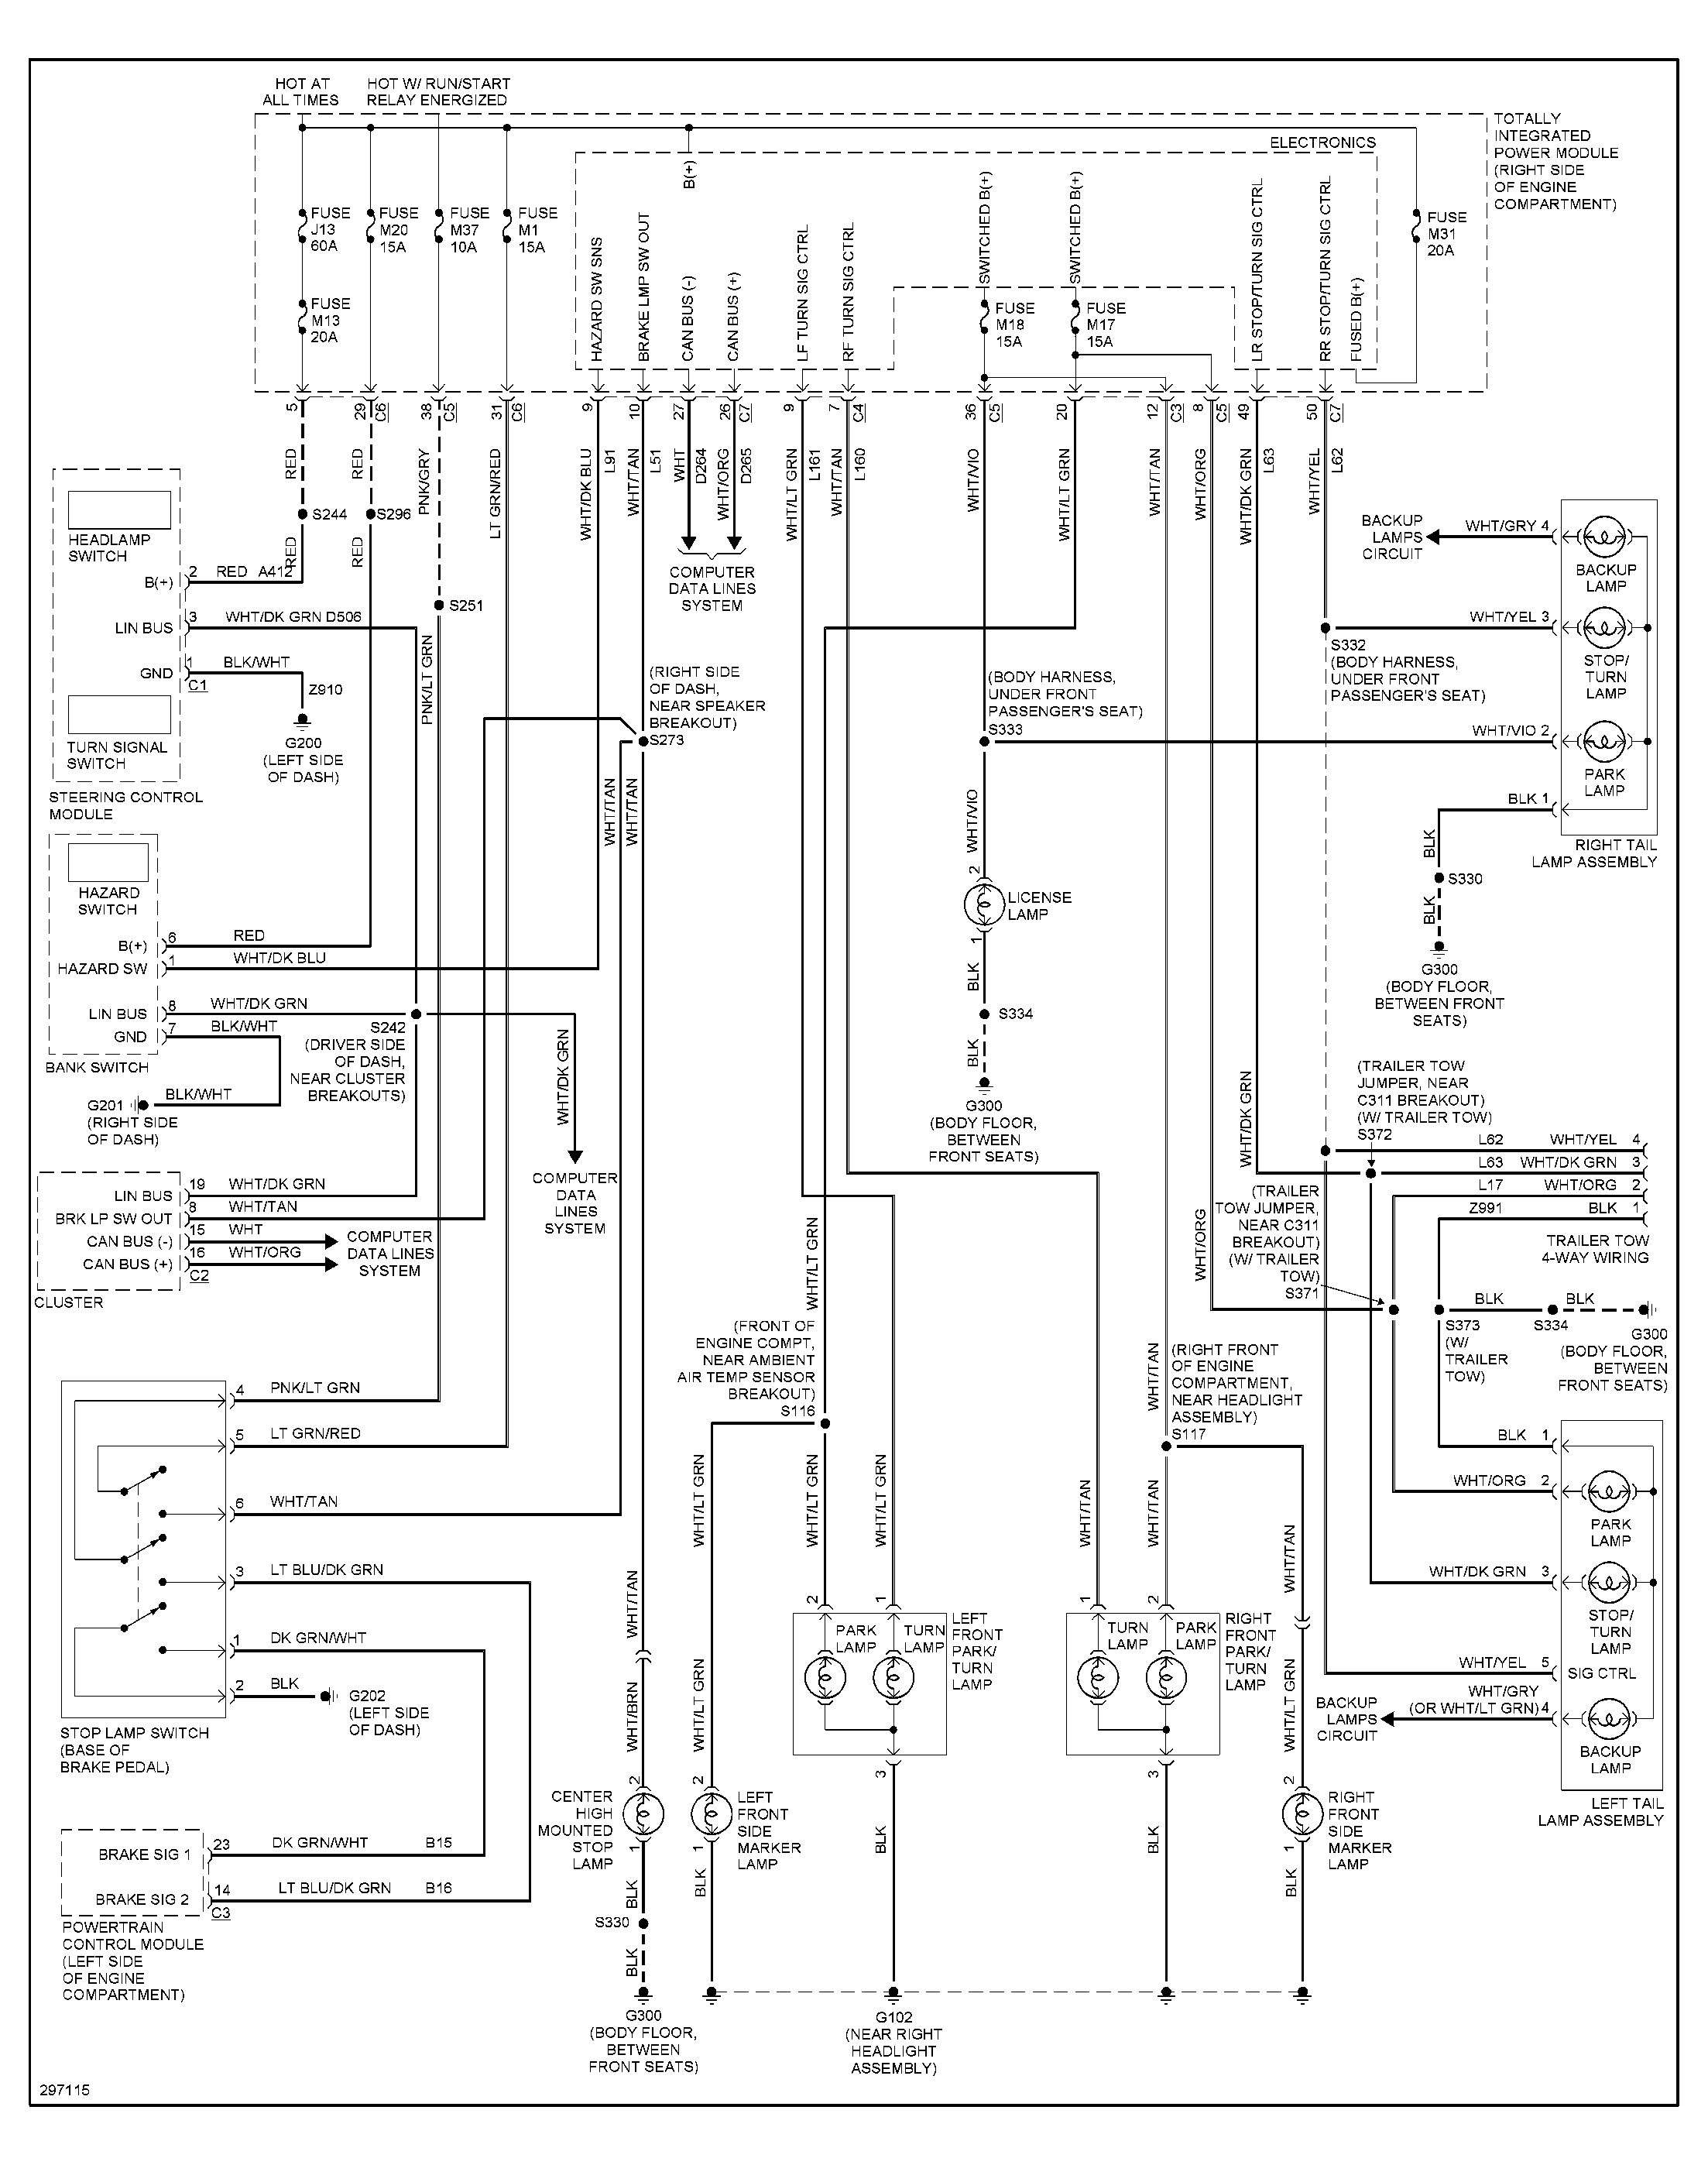 DIAGRAM] Jeep Wrangler Wiring Harness Diagram FULL Version HD Quality  Harness Diagram - CARRYBOYPHIL.K-DANSE.FRK-danse.fr